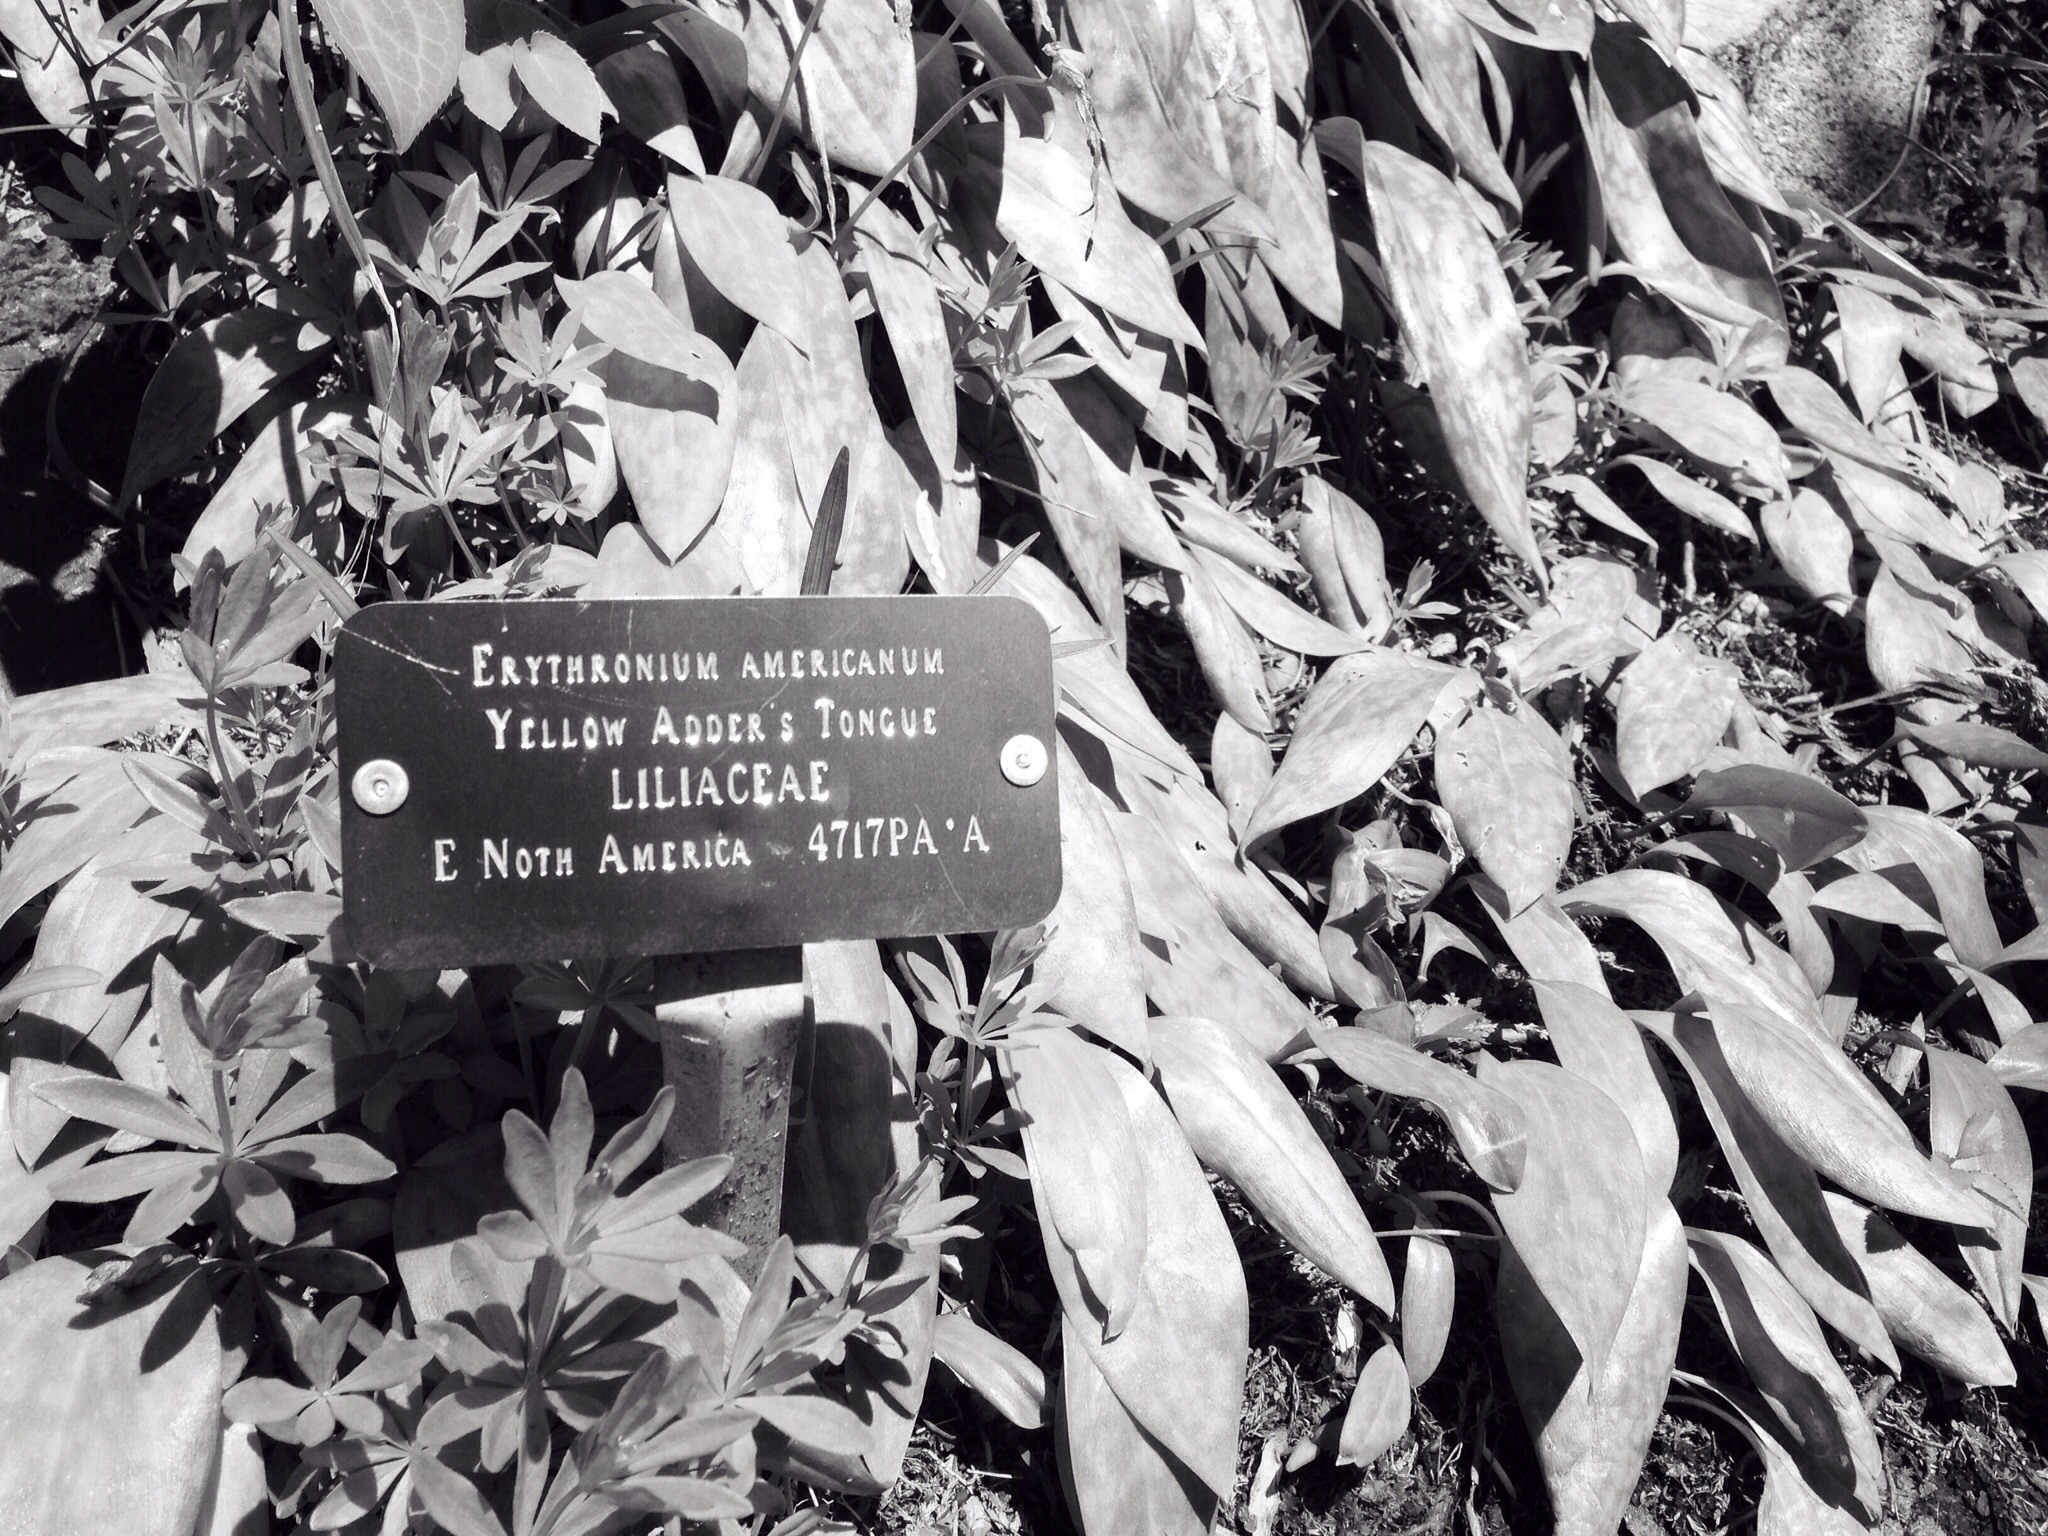 A well-named plant